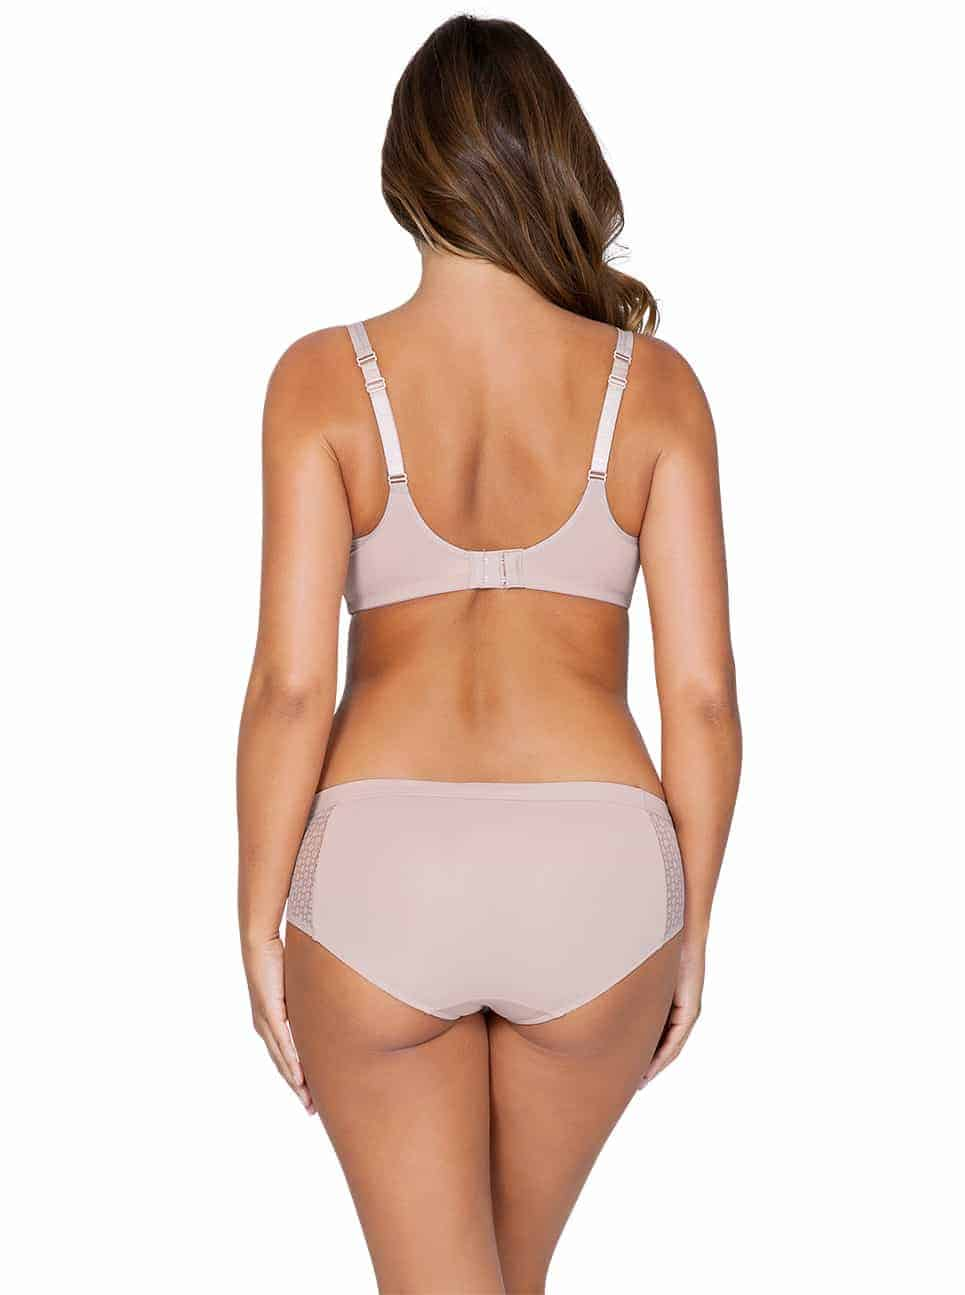 WendyP5412 UnlinedWire P5415 HipsterNudeBack copy 2 - Wendy Unlined Wire Bra - Victorian Rose – P5412